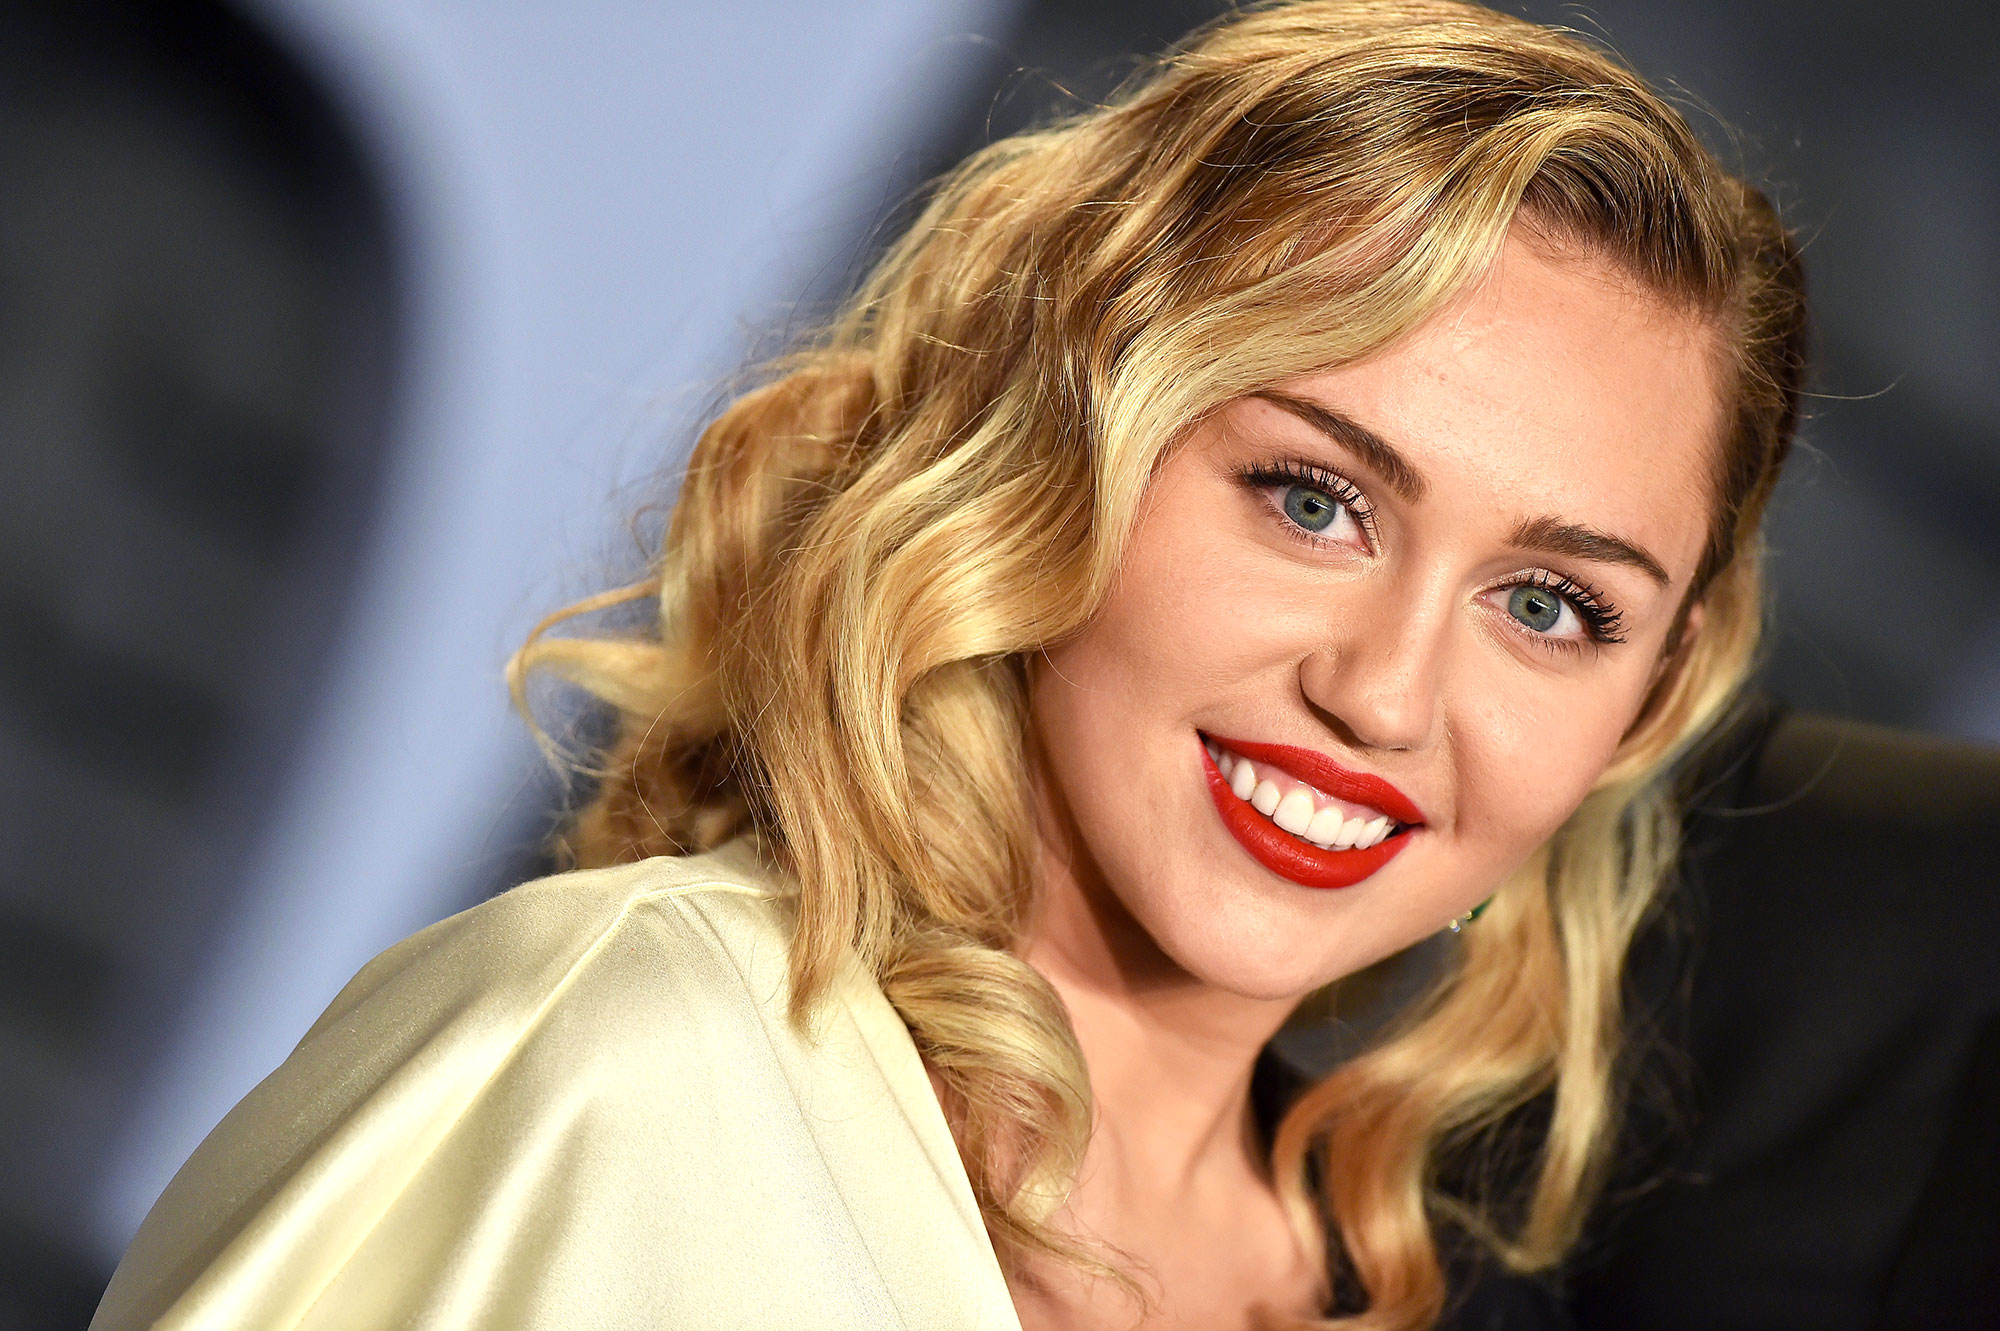 Miley Cyrus' Dating History: Timeline of Her Famous Exes, Flings